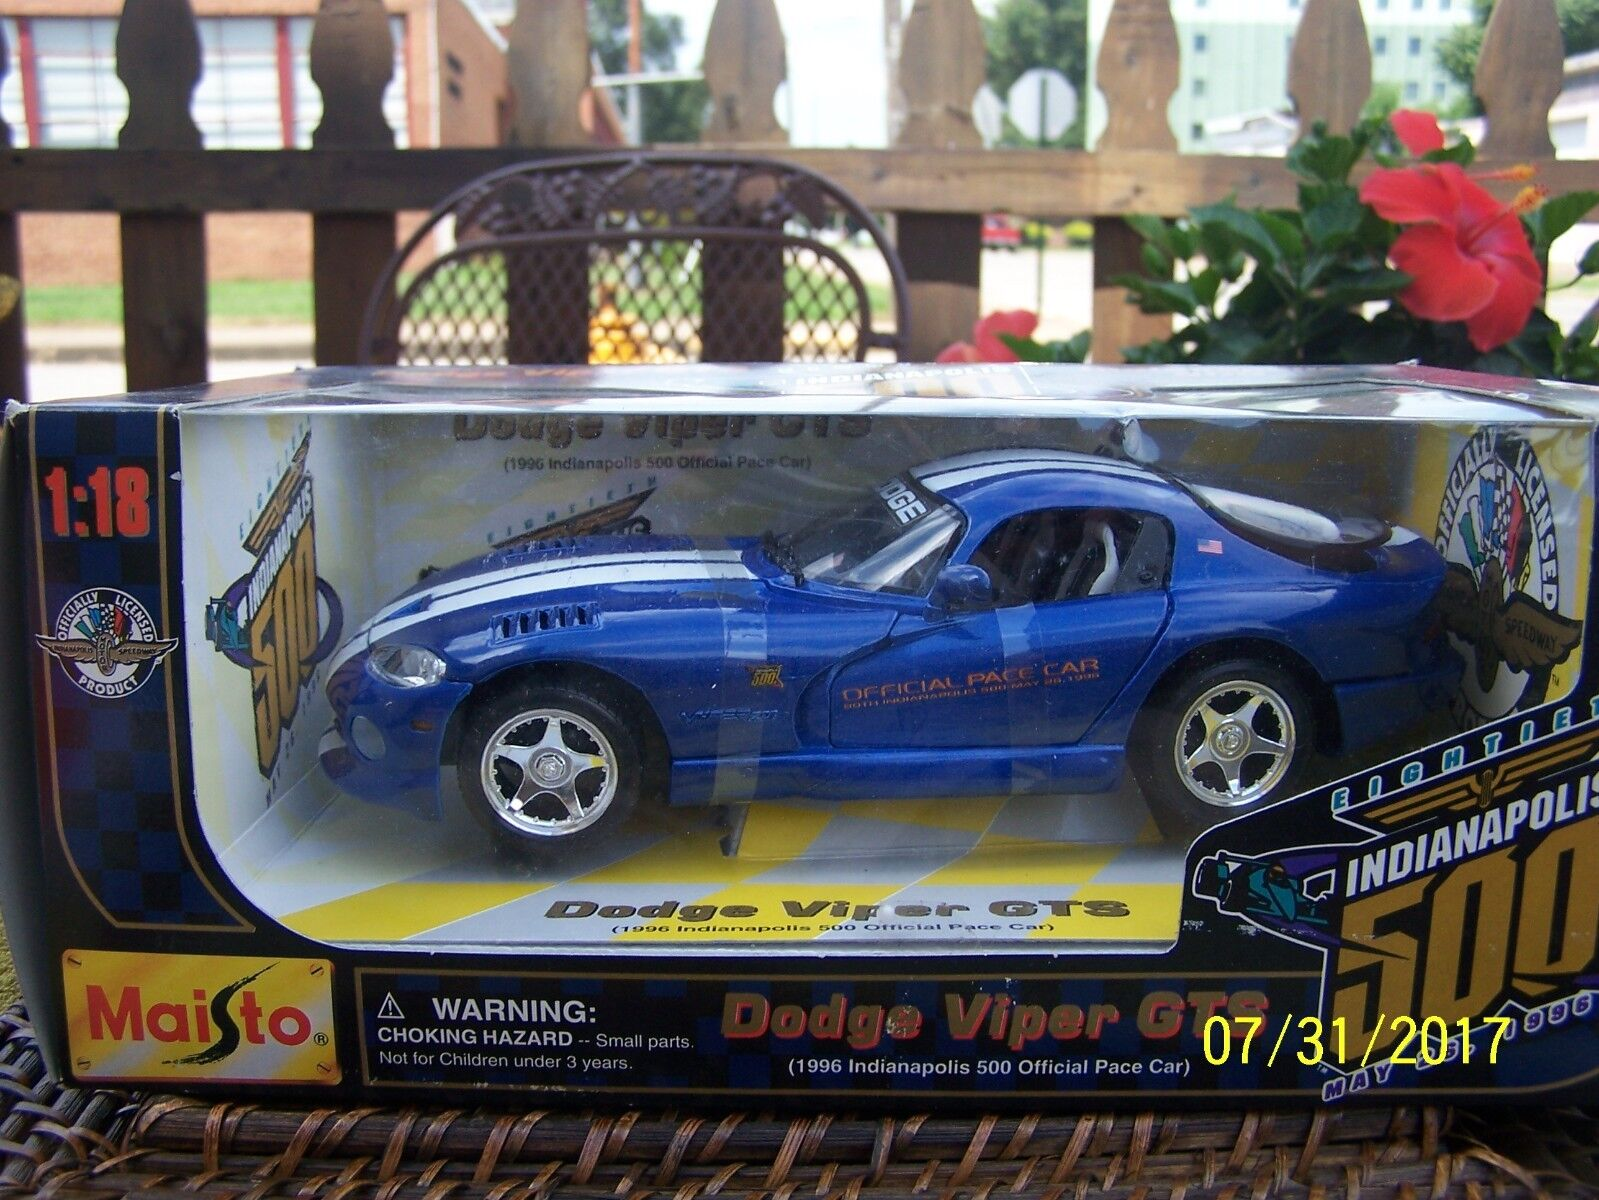 DODGE VIPER GTS CAR 1 18 SCALE DIE-CAST MAISTO 1996 INDIANAPOLIS 500 PACE CAR